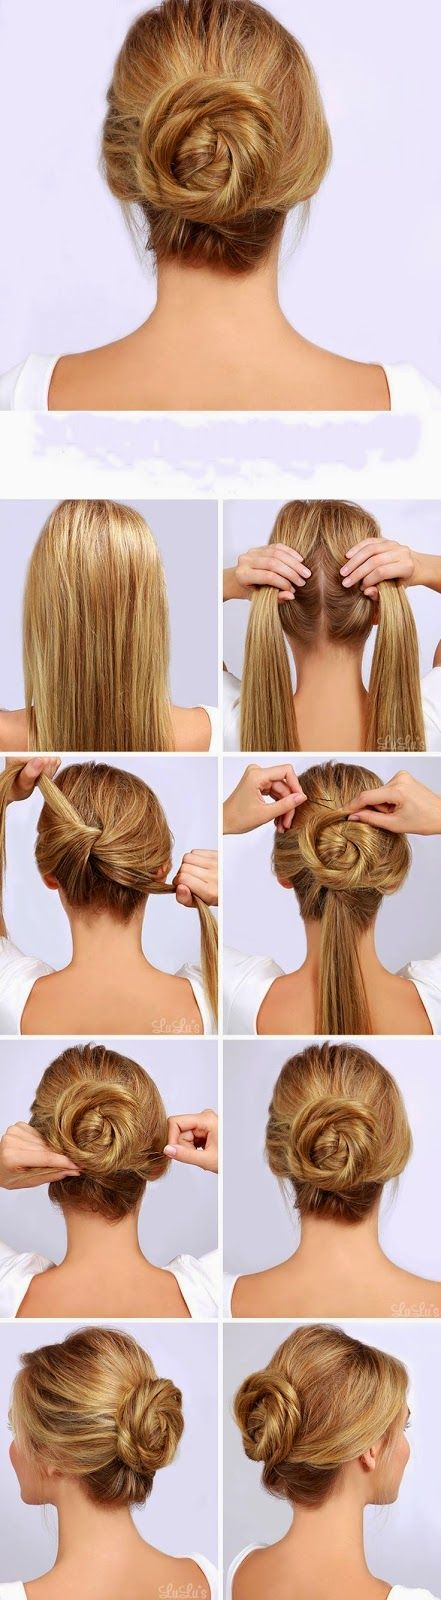 diy hairstyles new years eve